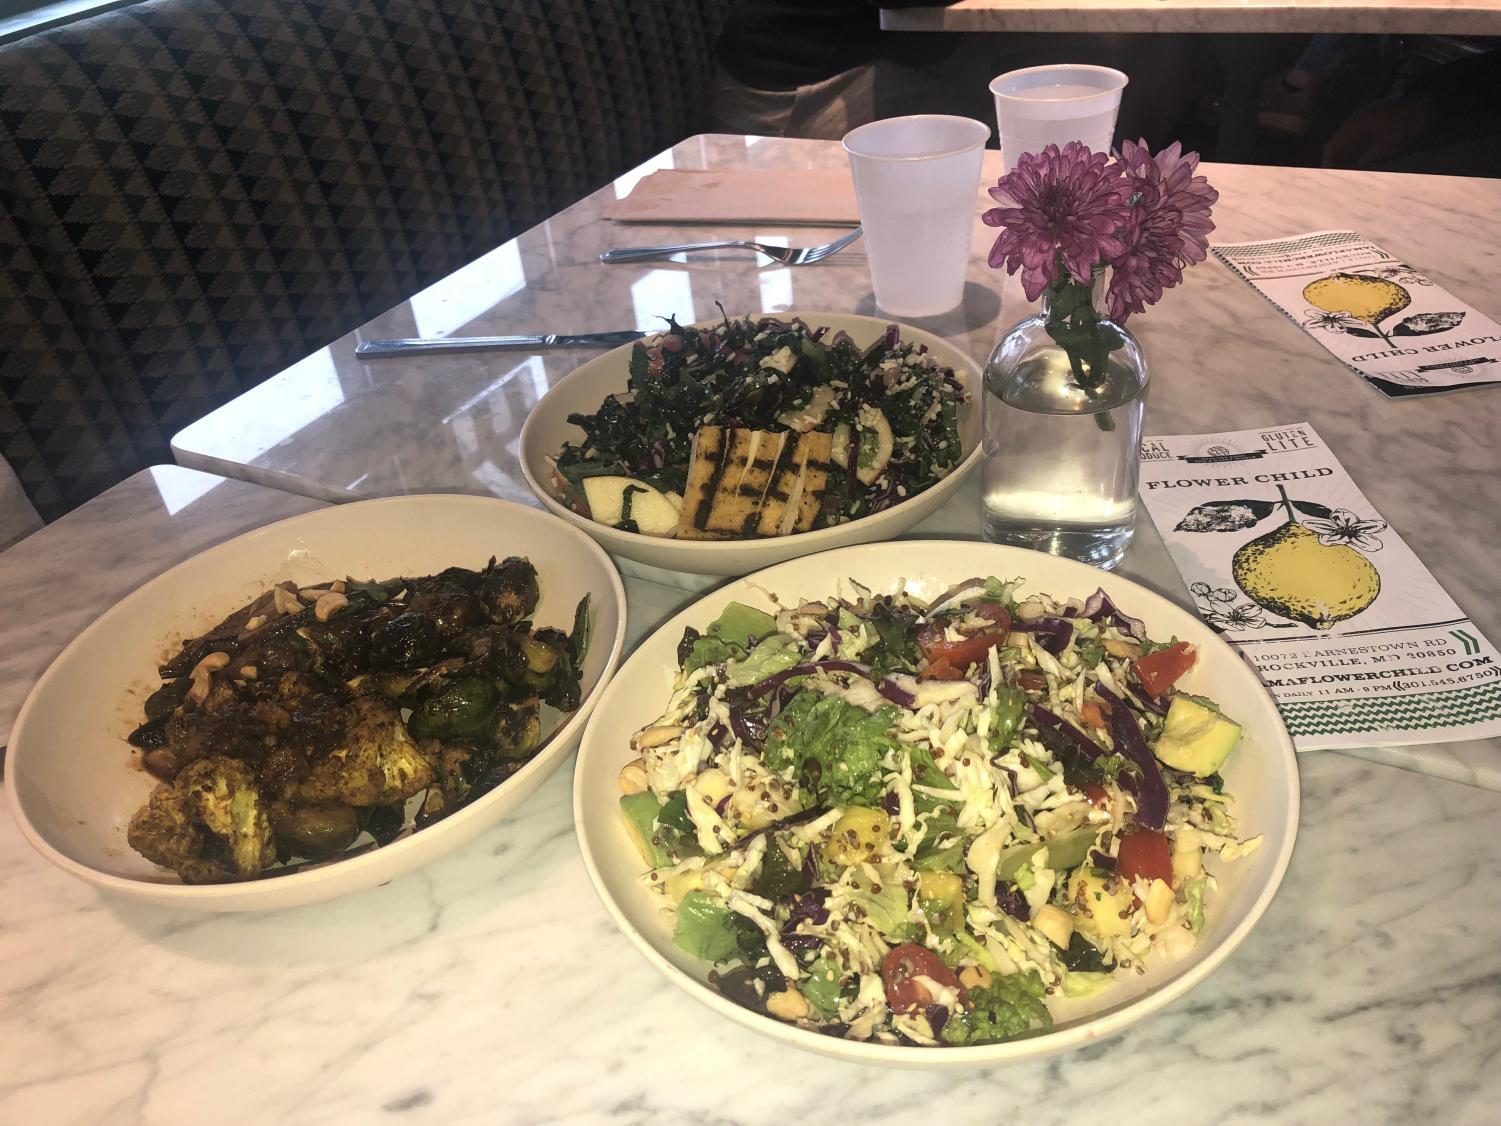 Pictured are the Vietnamese Crunch Salad (butter lettuce substituted for romaine), the Organic Kale Salad with Tofu and a plate with brussel sprouts, cauliflower and Japanese eggplant.